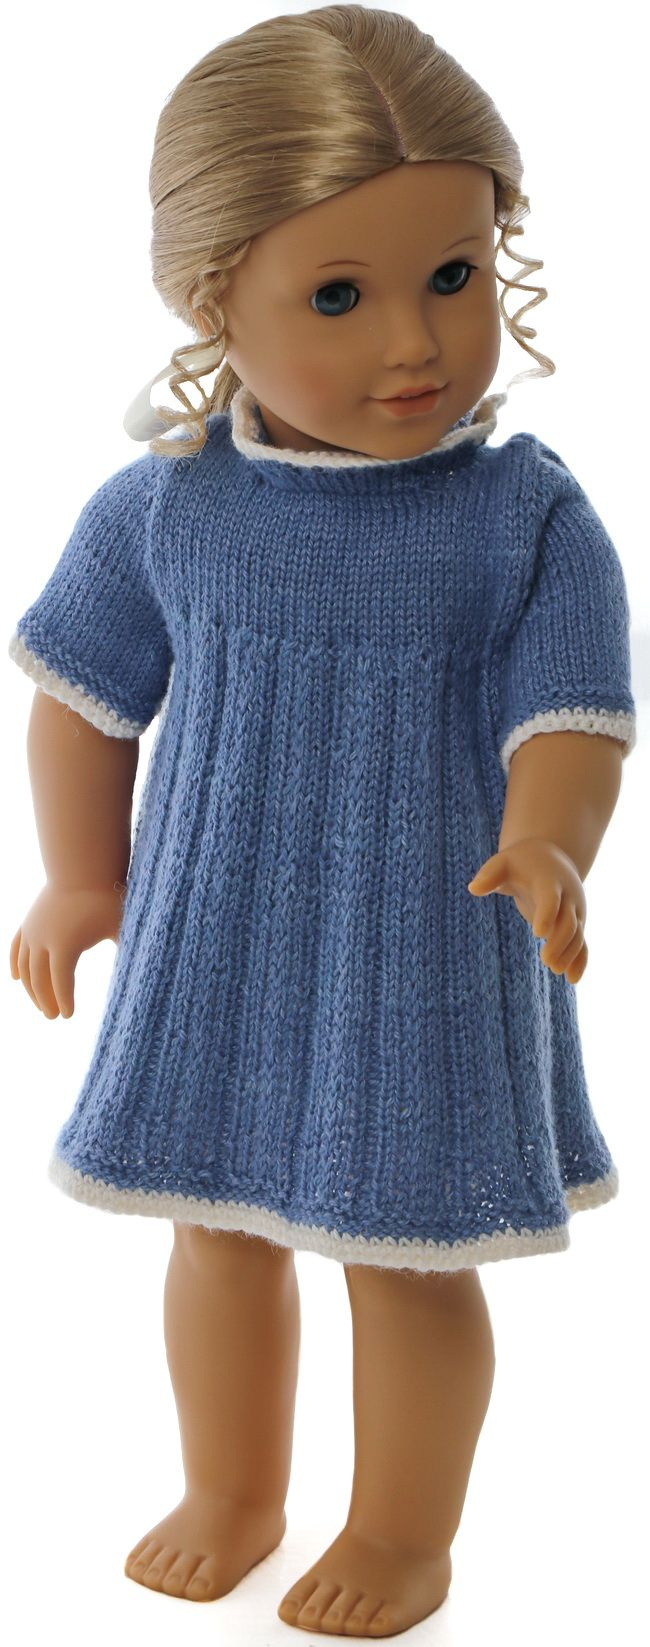 Dolls clothes knitting patterns to download   Baby ...